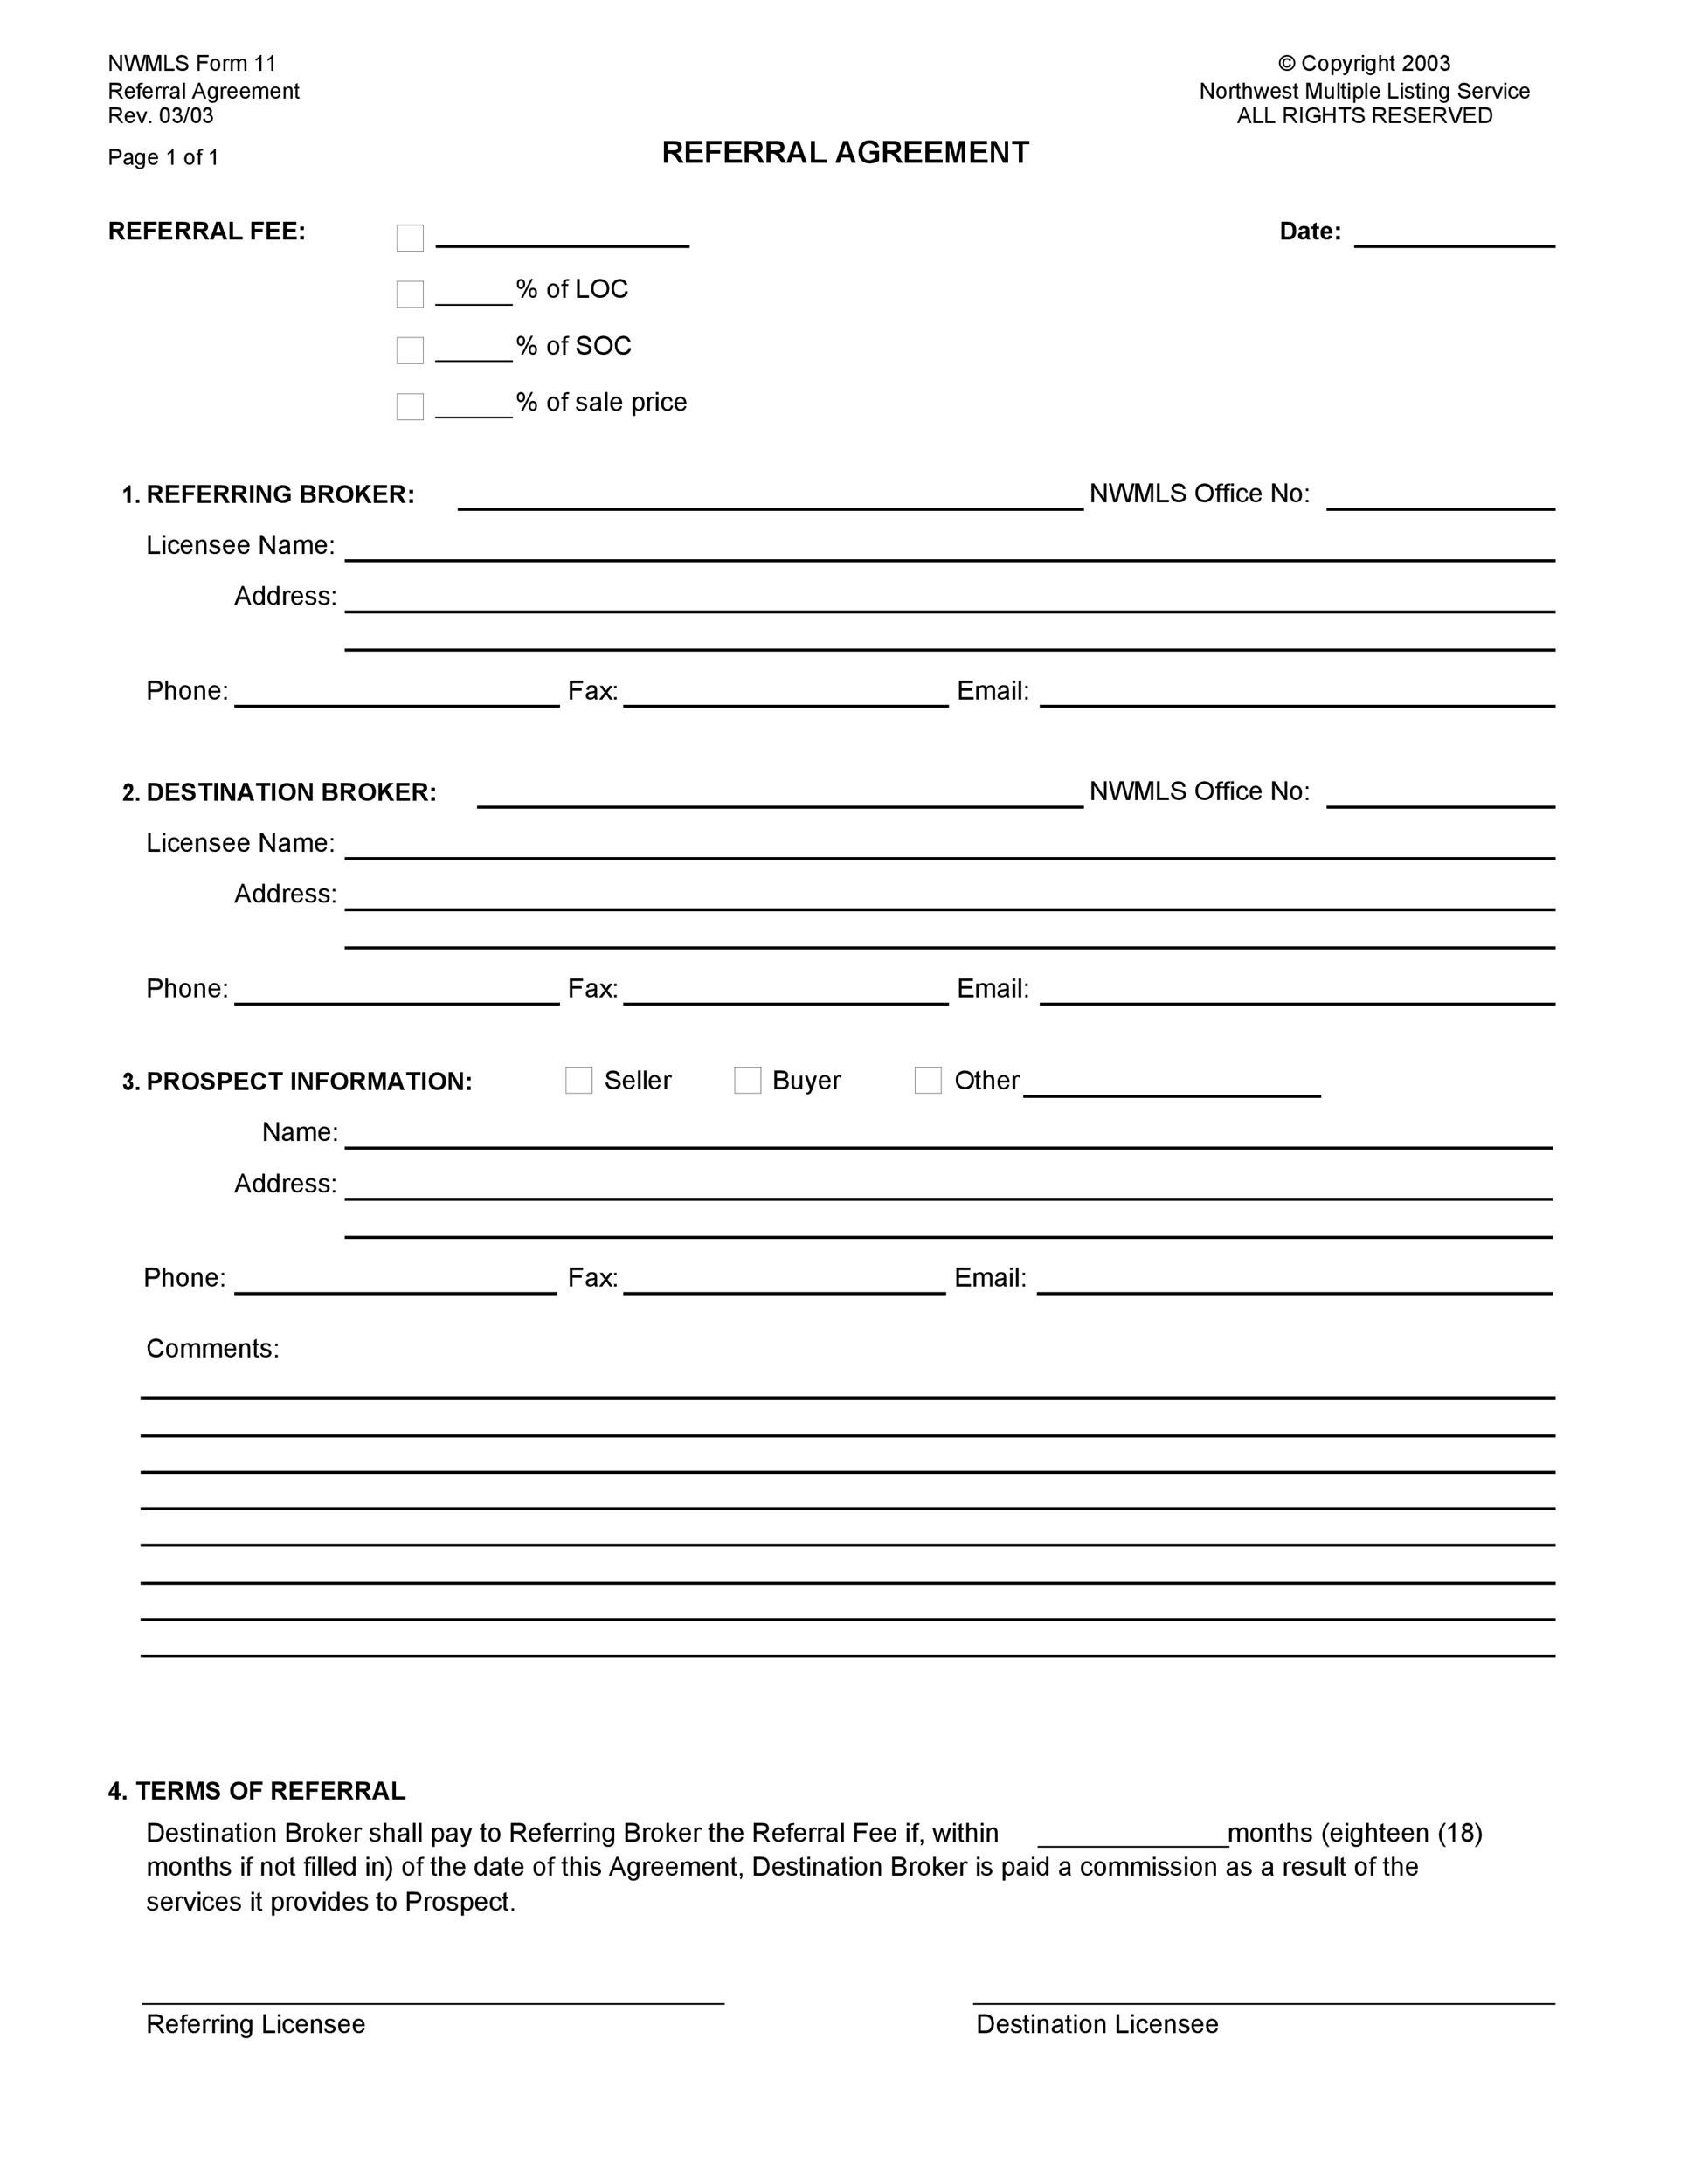 Free referral agreement template 26